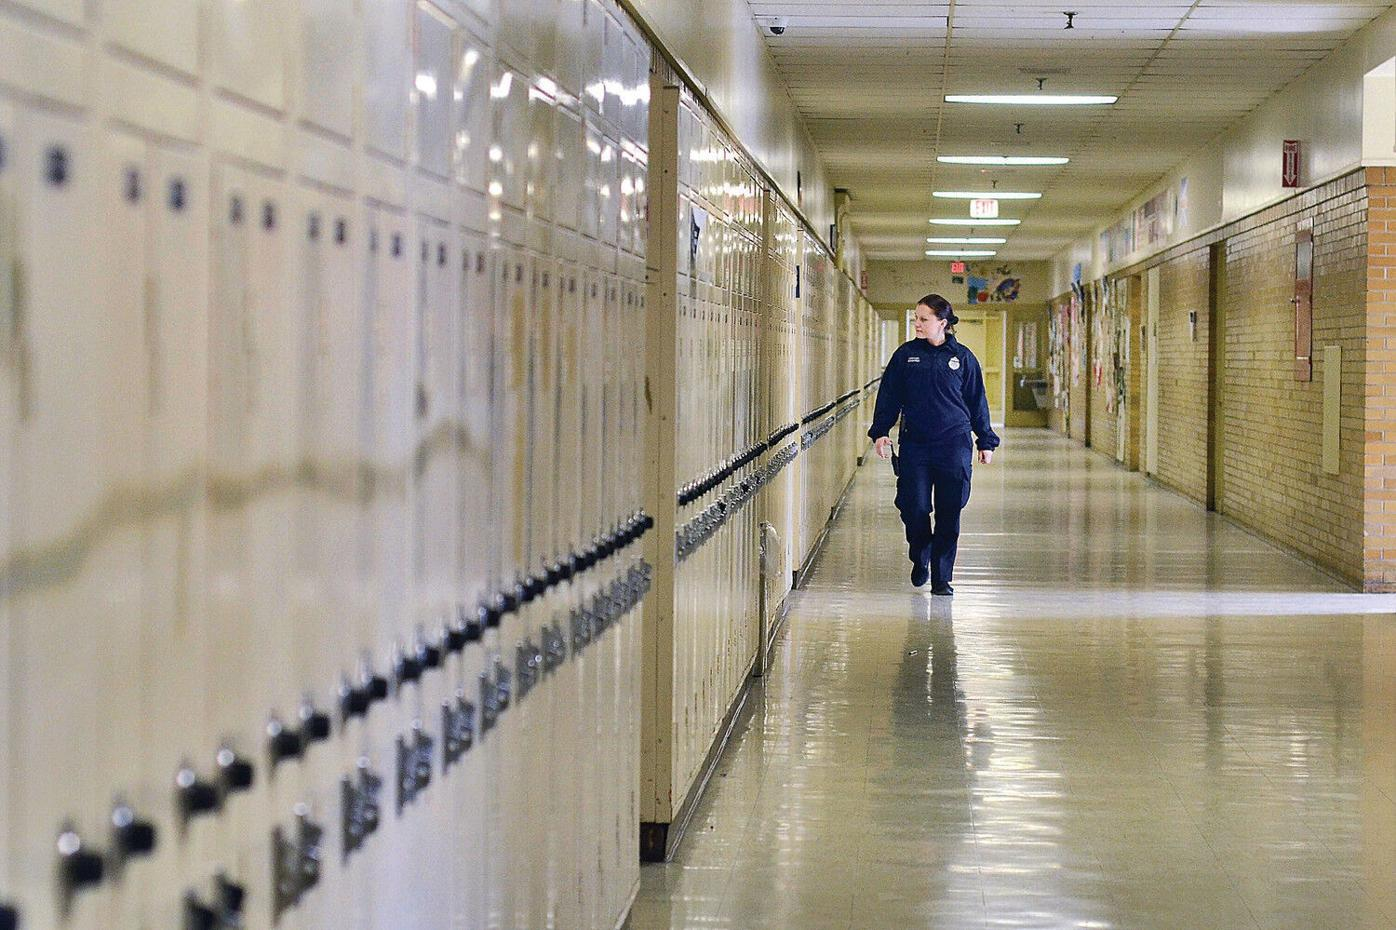 How safe are our schools?